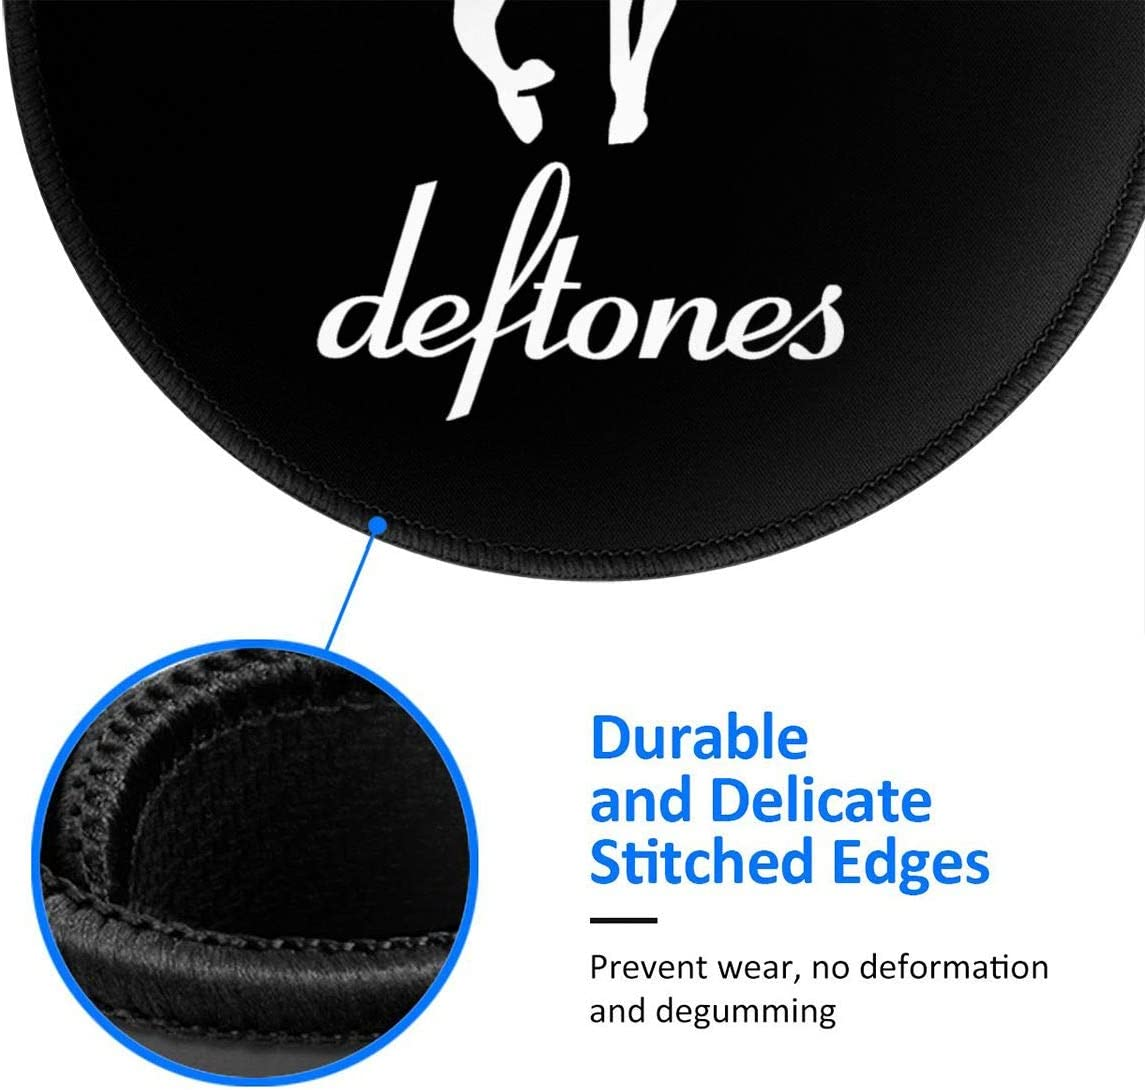 Dahl Deftones Rubber Round Mouse Pad 7.9x7.9 Inches Non Slip Perfect for Working and Gaming